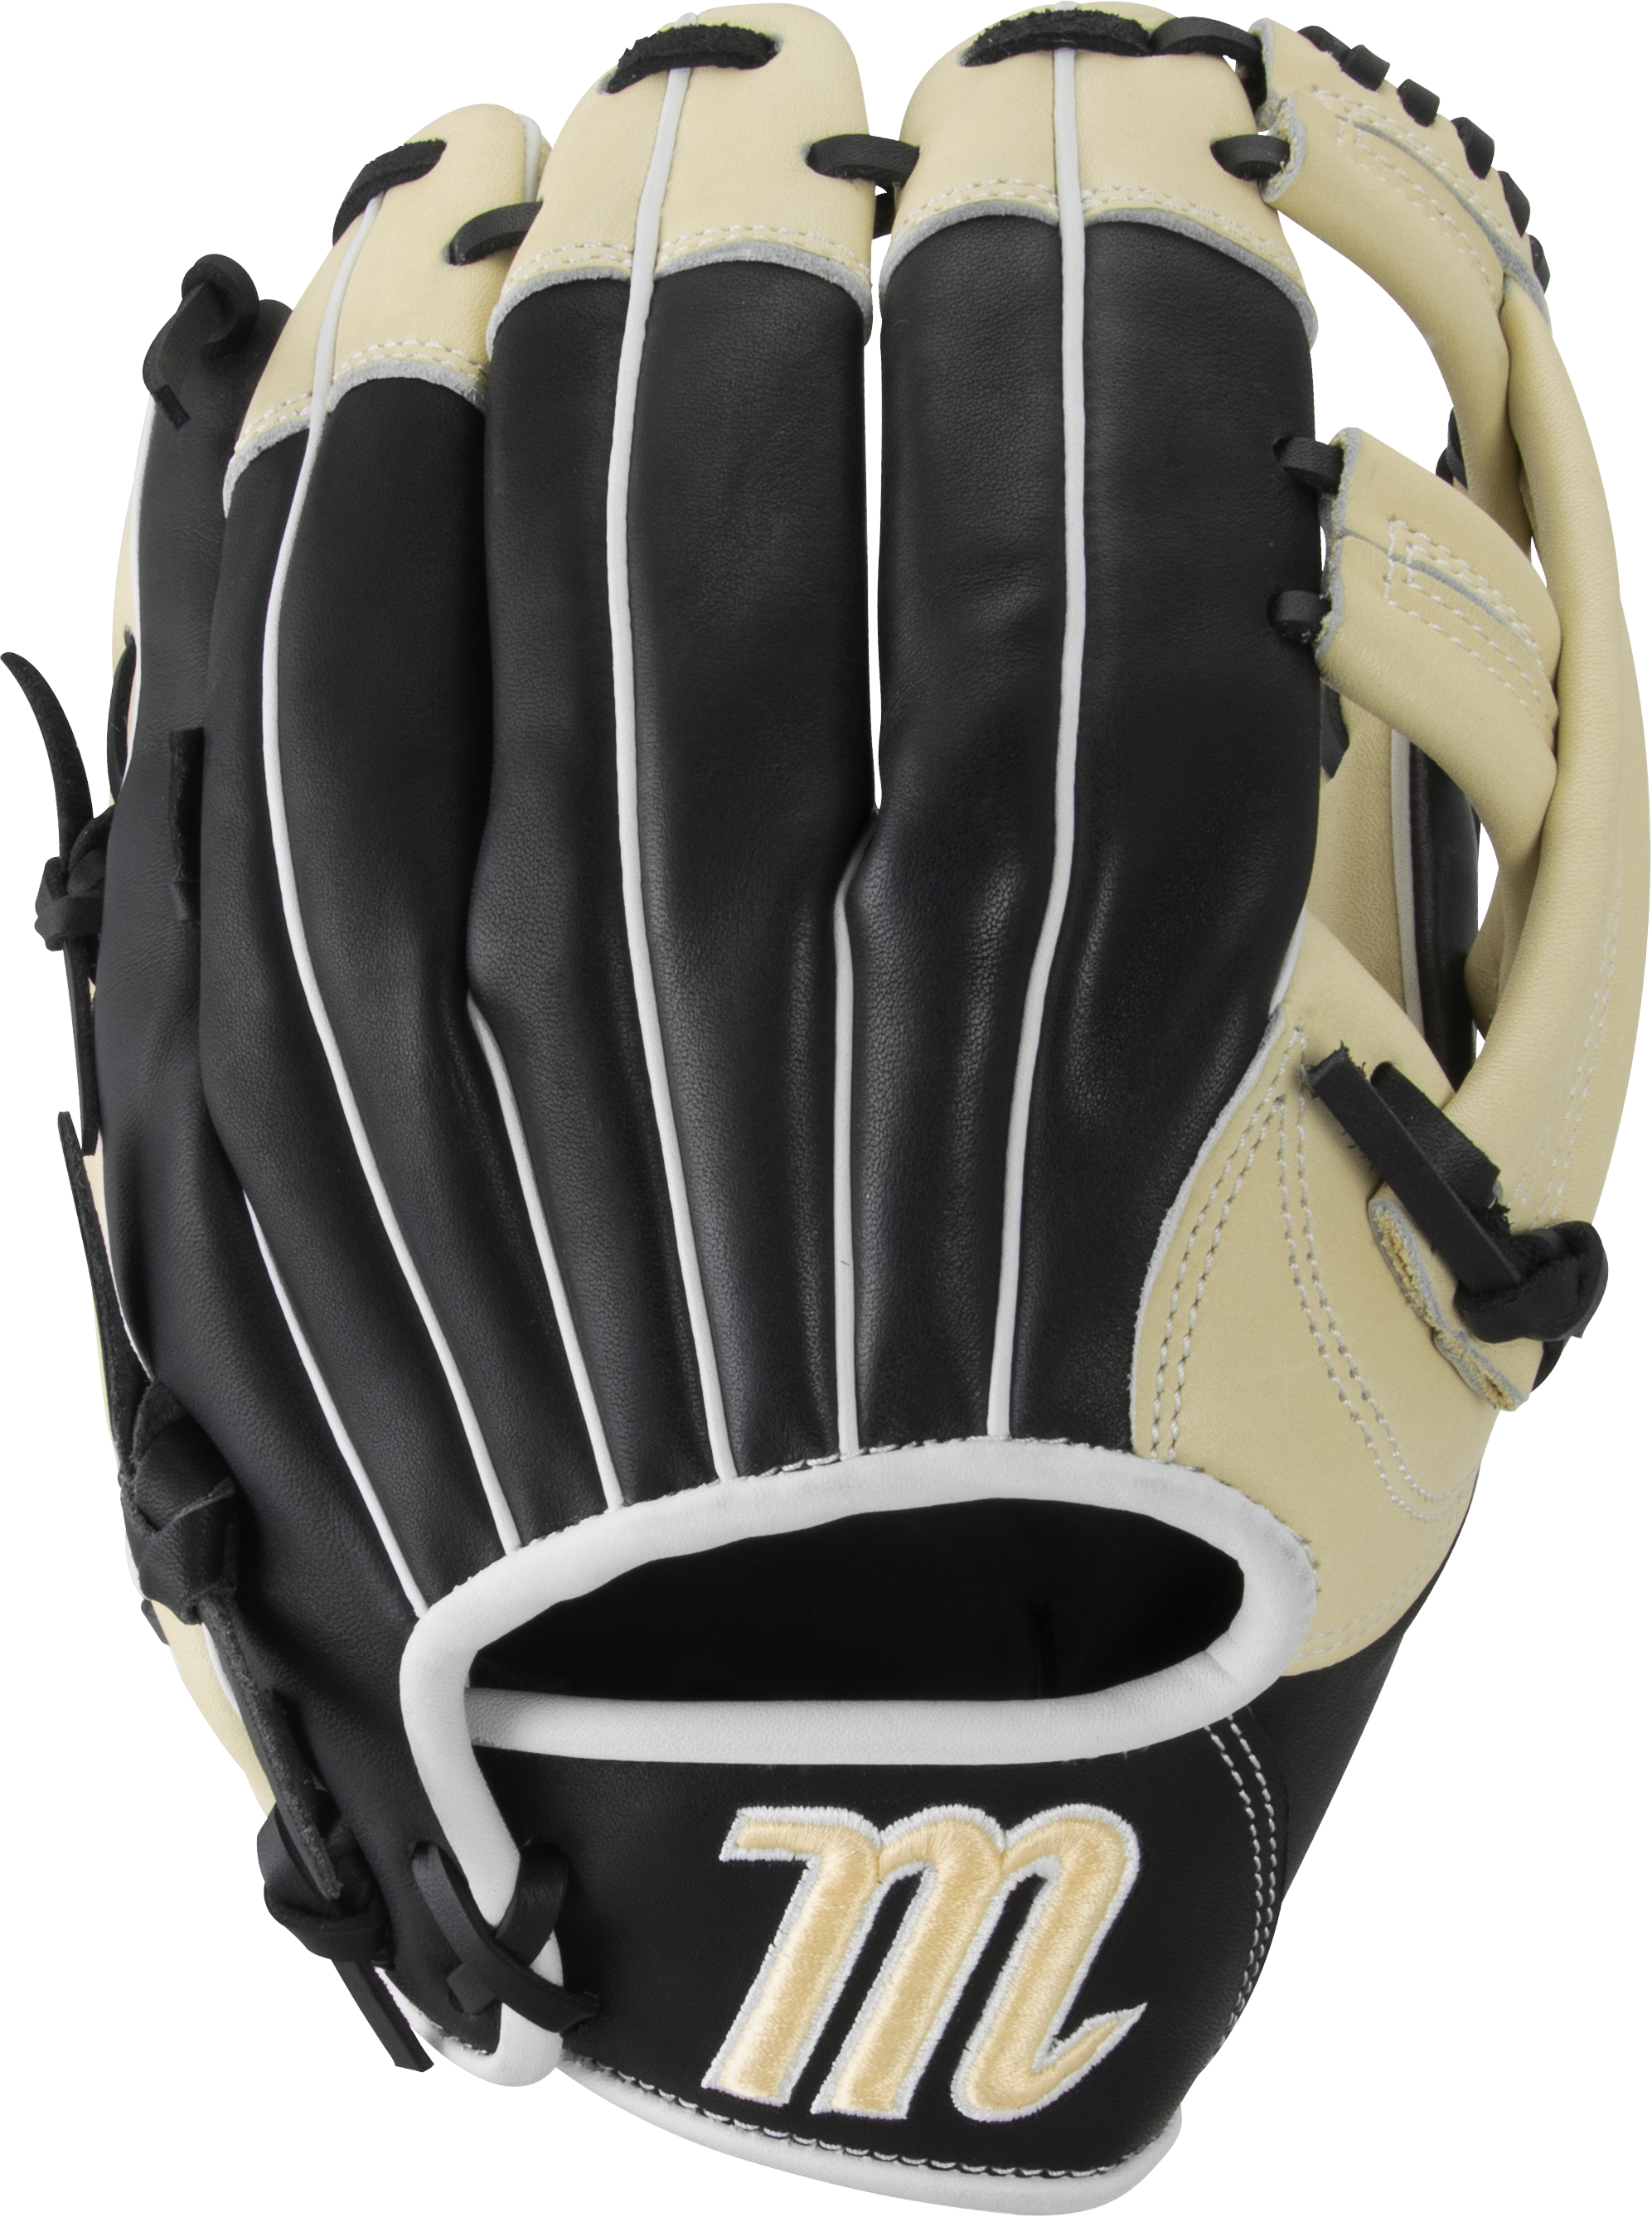 marucci-ascension-as1150y-baseball-glove-11-50-single-post-web-right-hand-throw MFGAS115Y-BKCM-RightHandThrow Marucci 849817099568 Tight-grain steerhide shell leather and palm lining increases durability while reducing